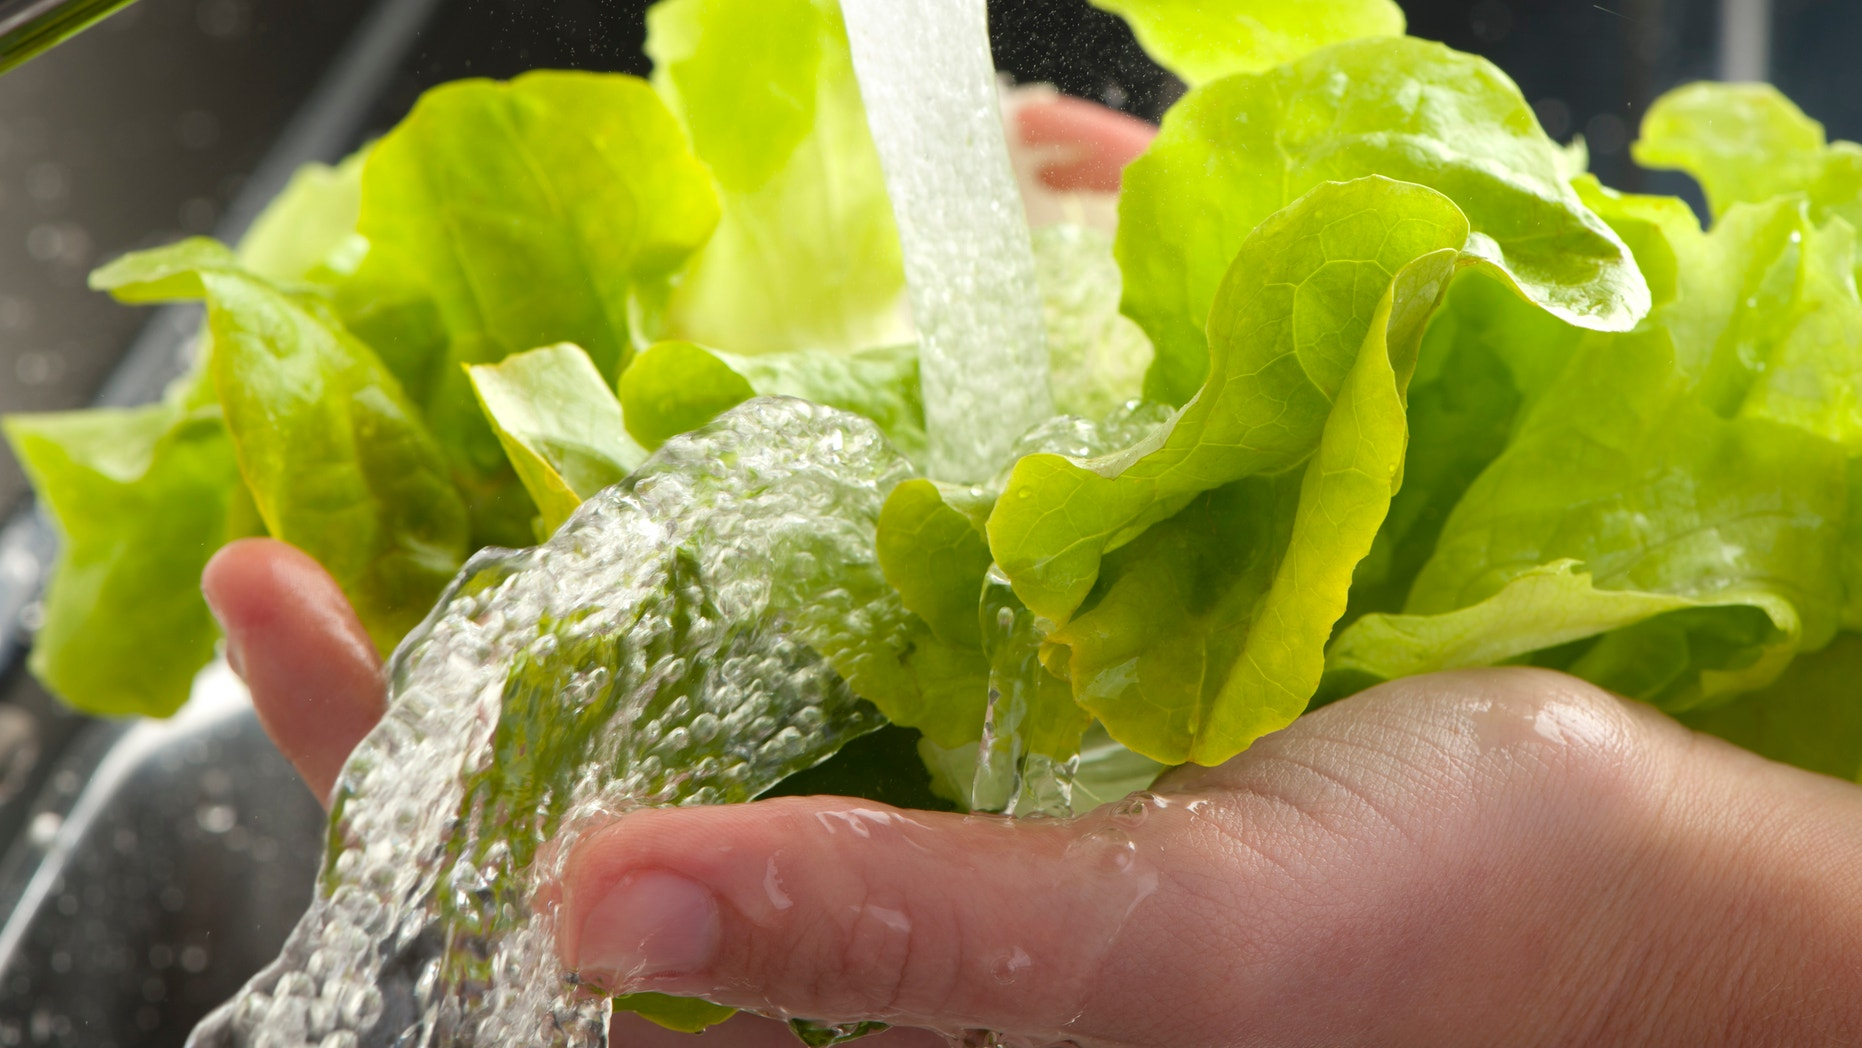 Food experts recommend washing fruits and vegetables in order to lessen the risk of contracting a foodborne illness.